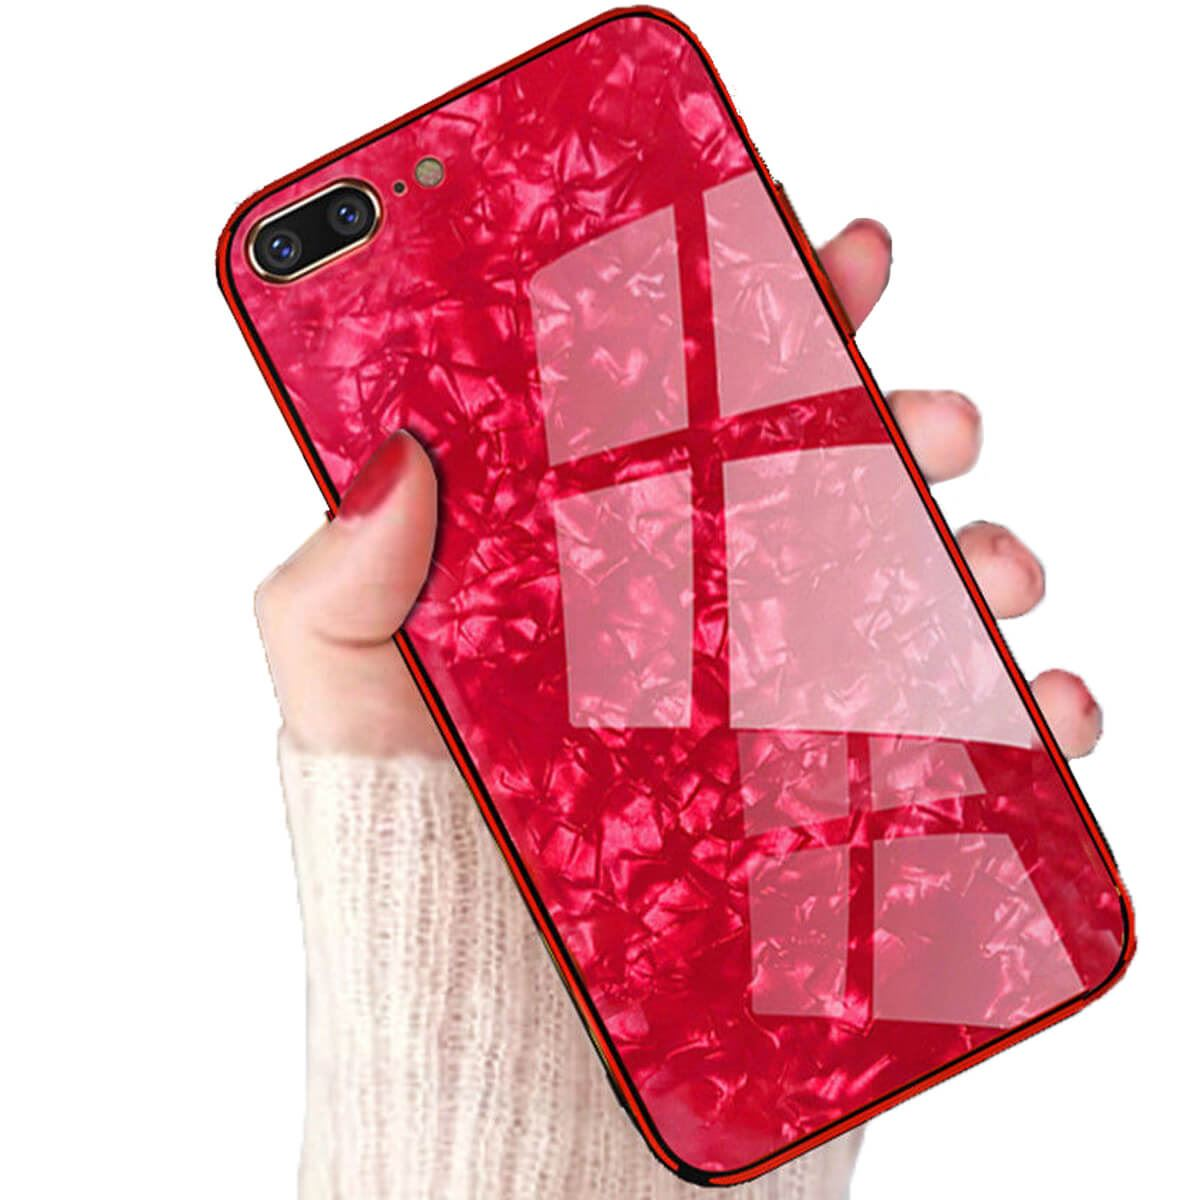 Marble-Tempered-Glass-Case-For-Apple-iPhone-X-XS-XR-Max-10-8-7-6s-6-Luxury-Cover thumbnail 7